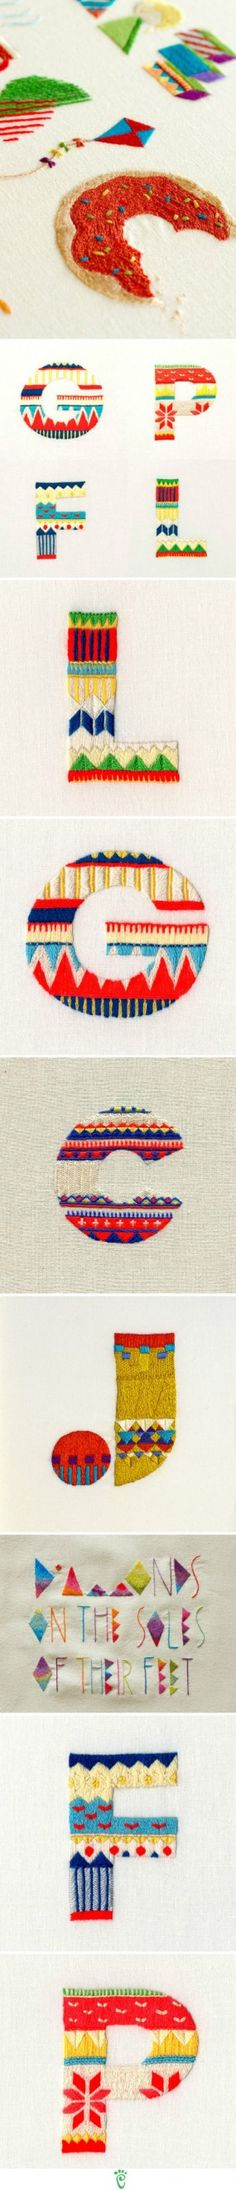 Embroidered letters | Surprise DIY